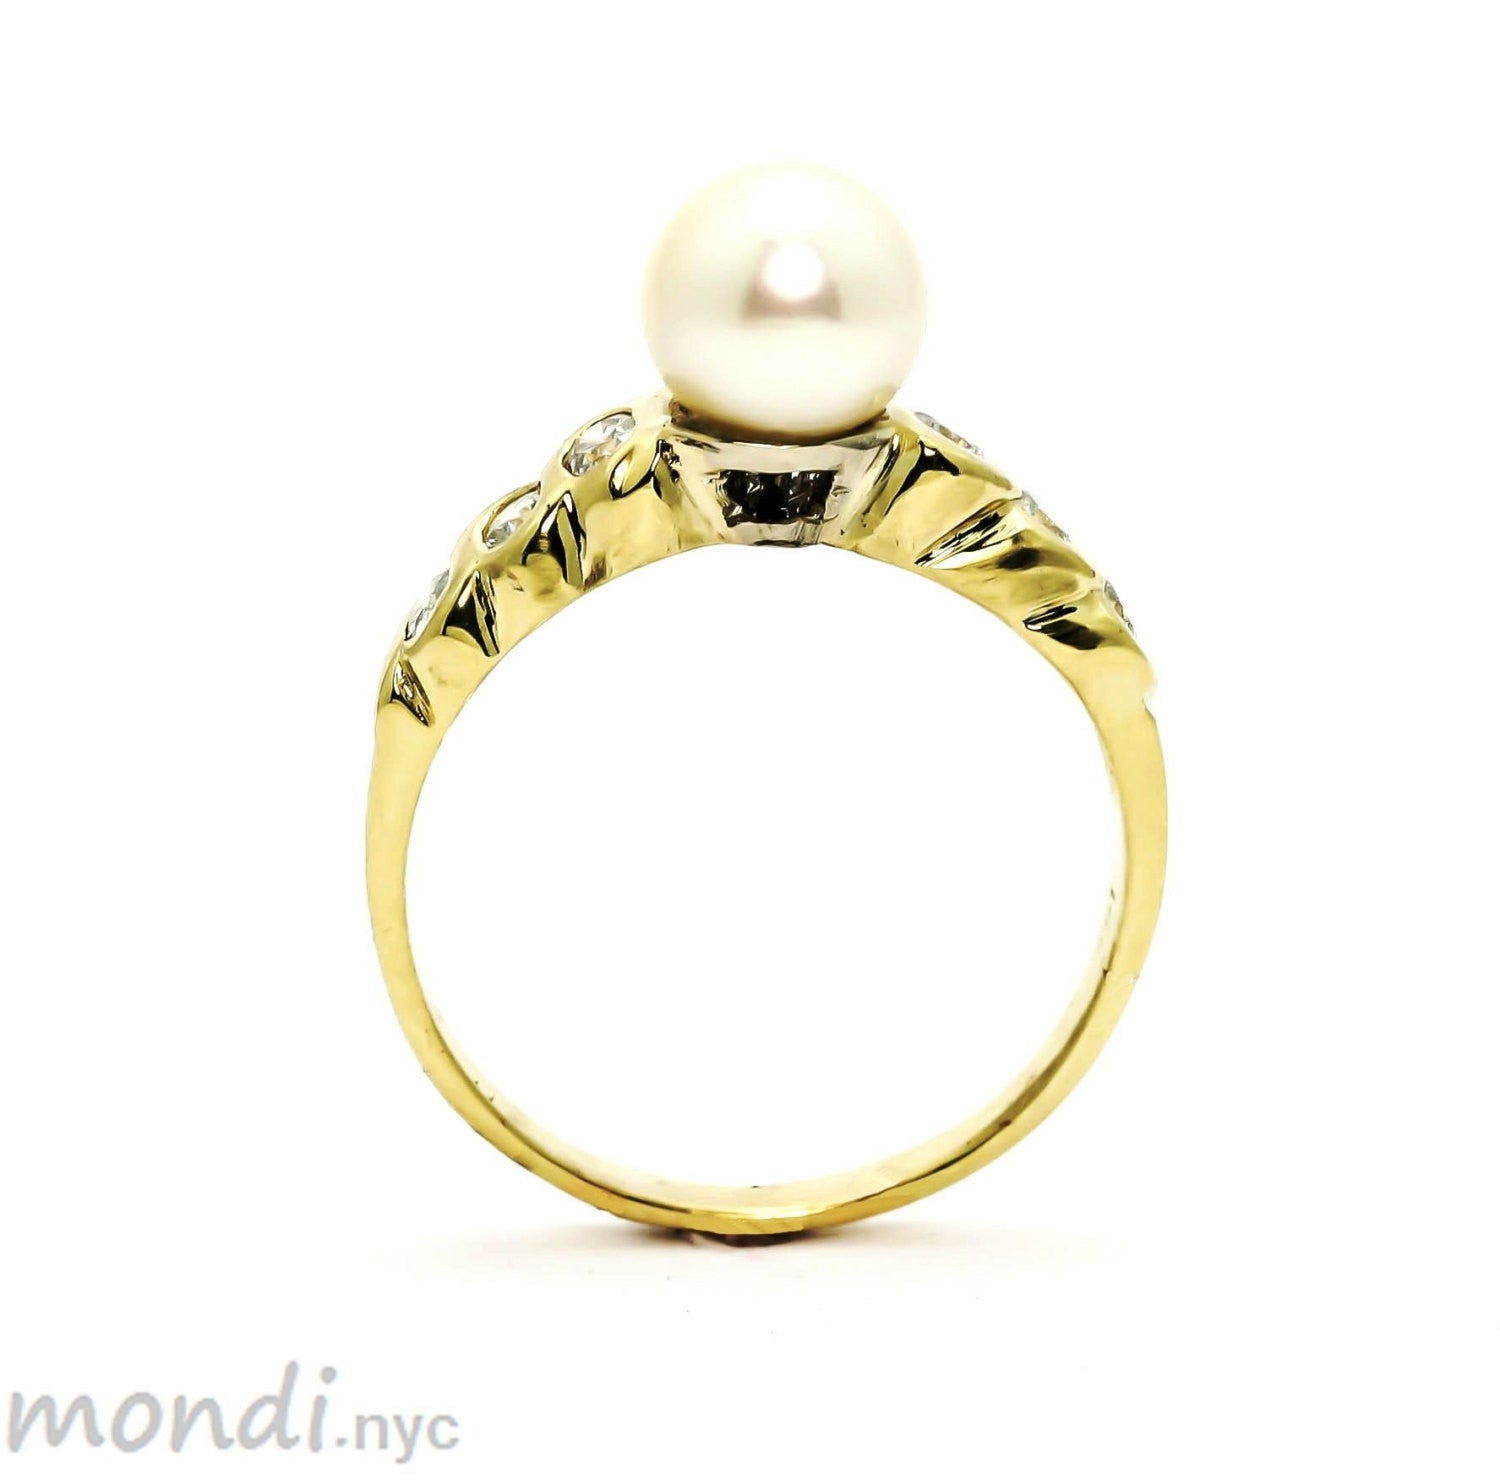 Pearl & Diamond Engagement Ring, Anniversary Ring, Cocktail Ring